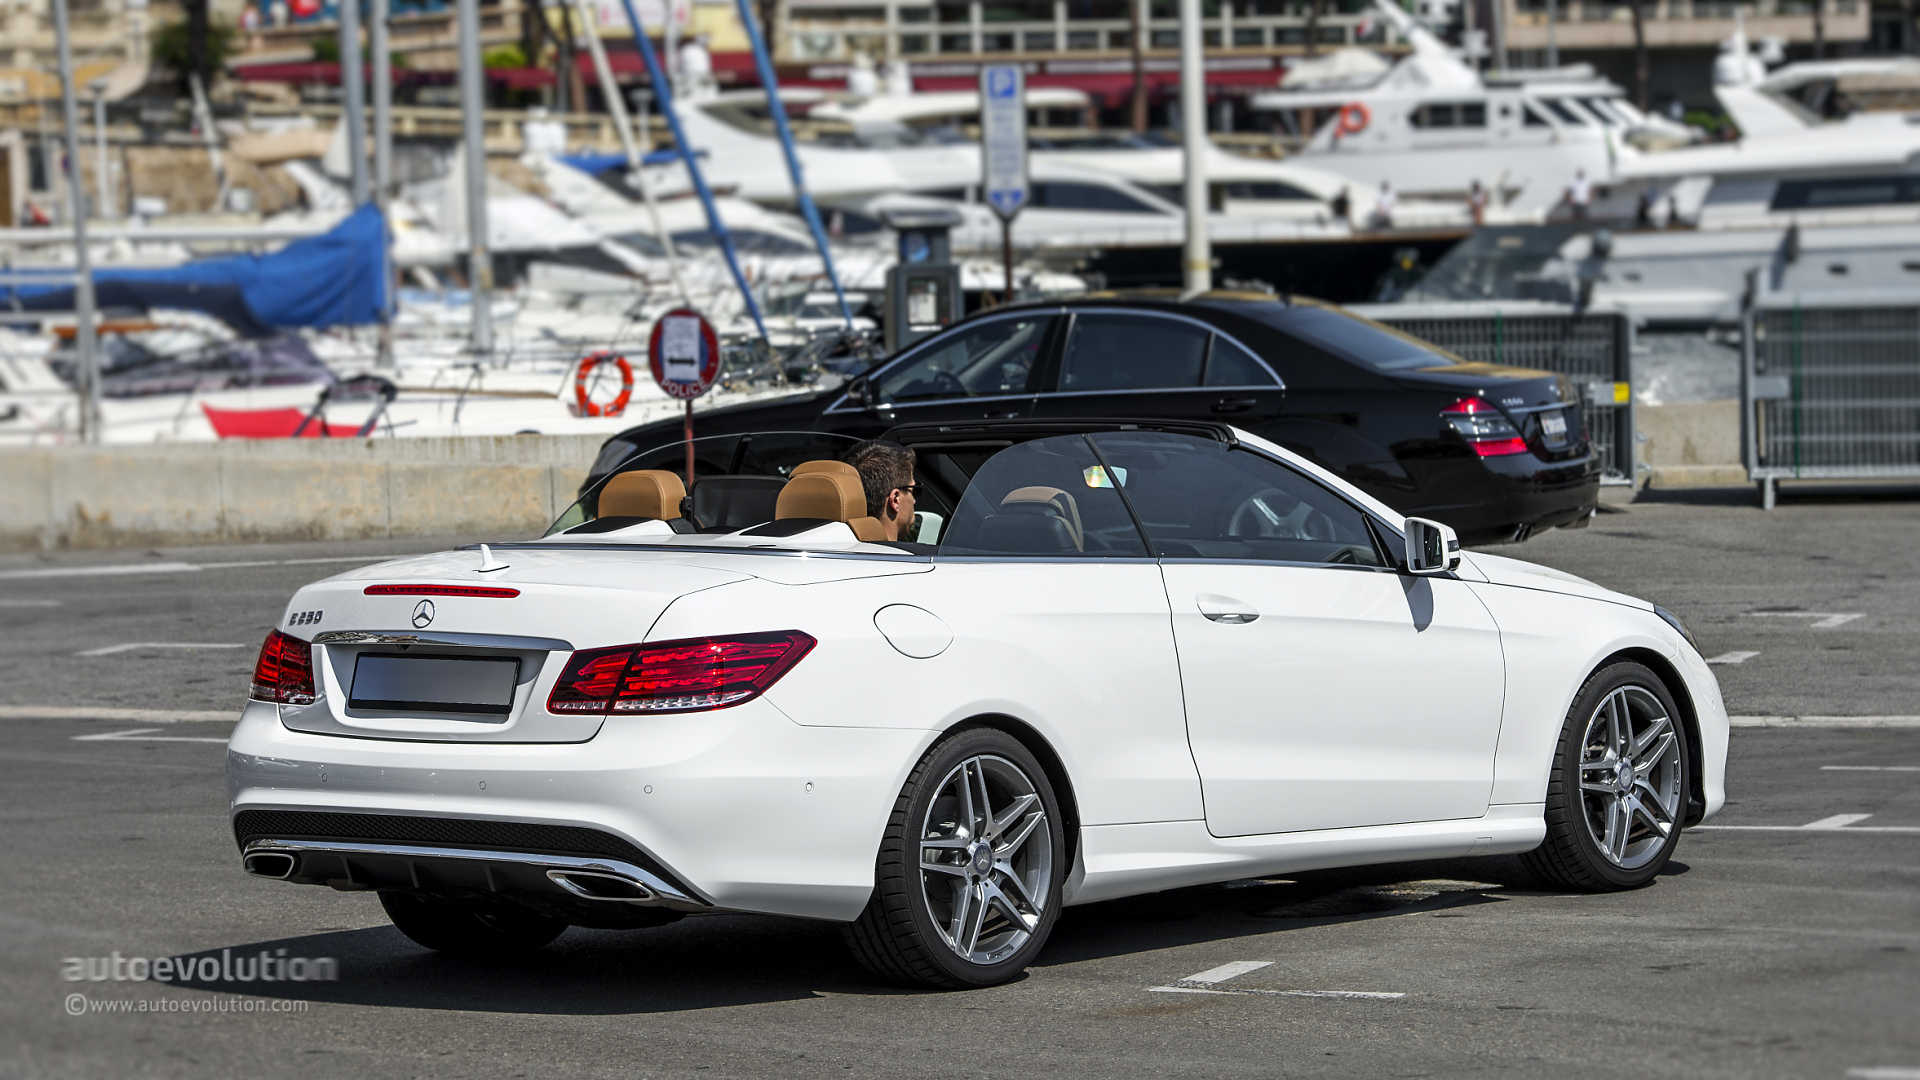 2014 mercedes benz e class cabriolet review autoevolution for Mercedes benz e350 cabriolet